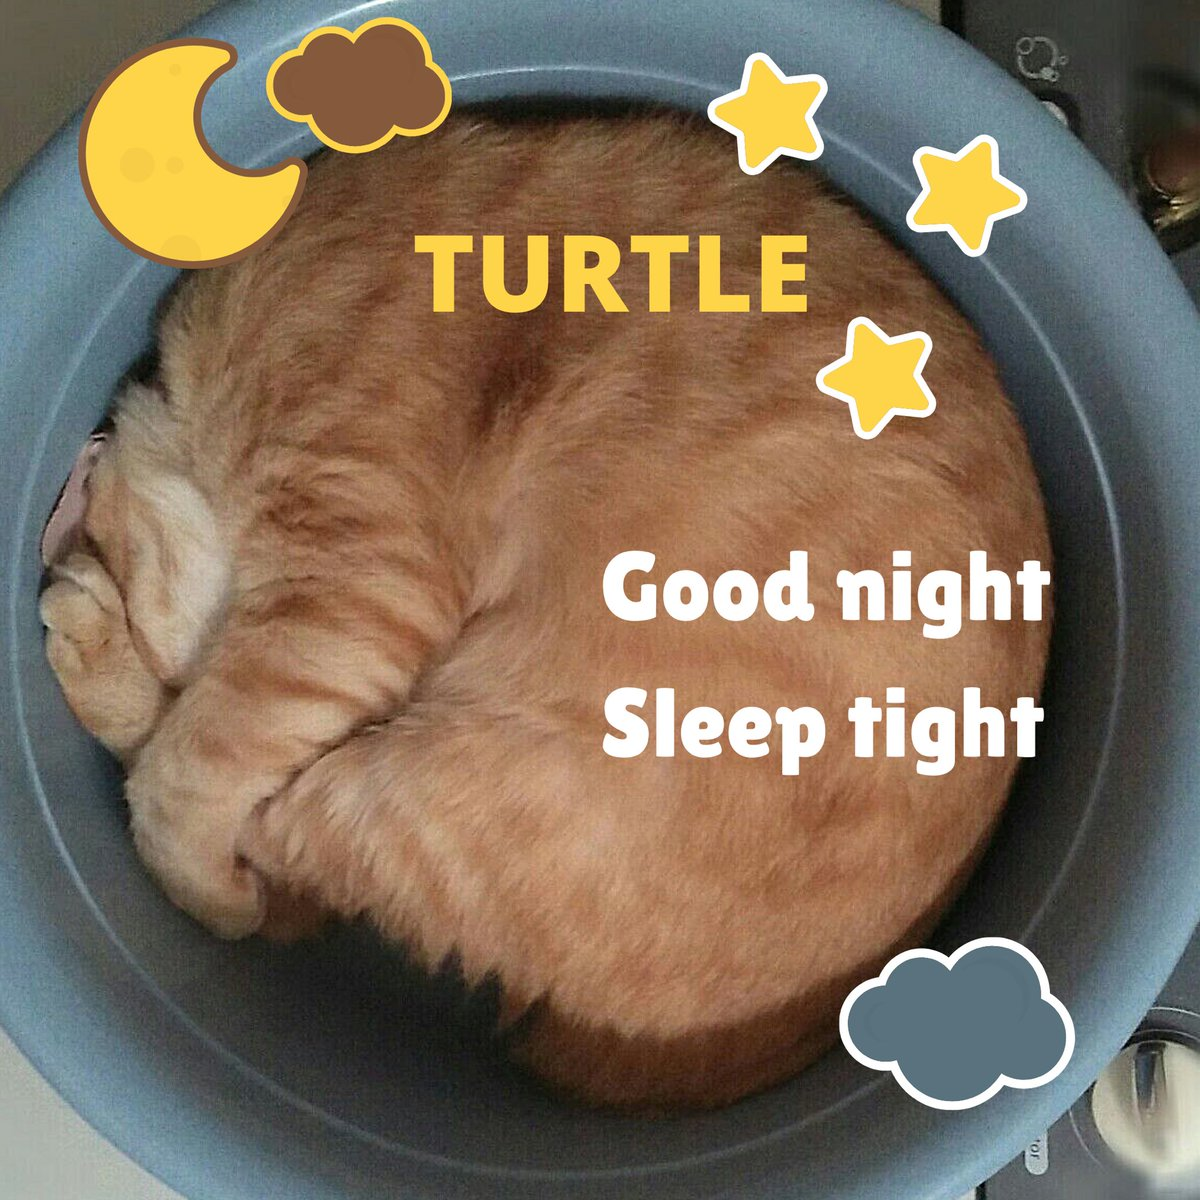 Good Dreams ......                     Conversation With Our Adorable Cats. #Caturday,#CatsOfTwitter,#CatsOnTwitter,#catlovers,#sundayvibes